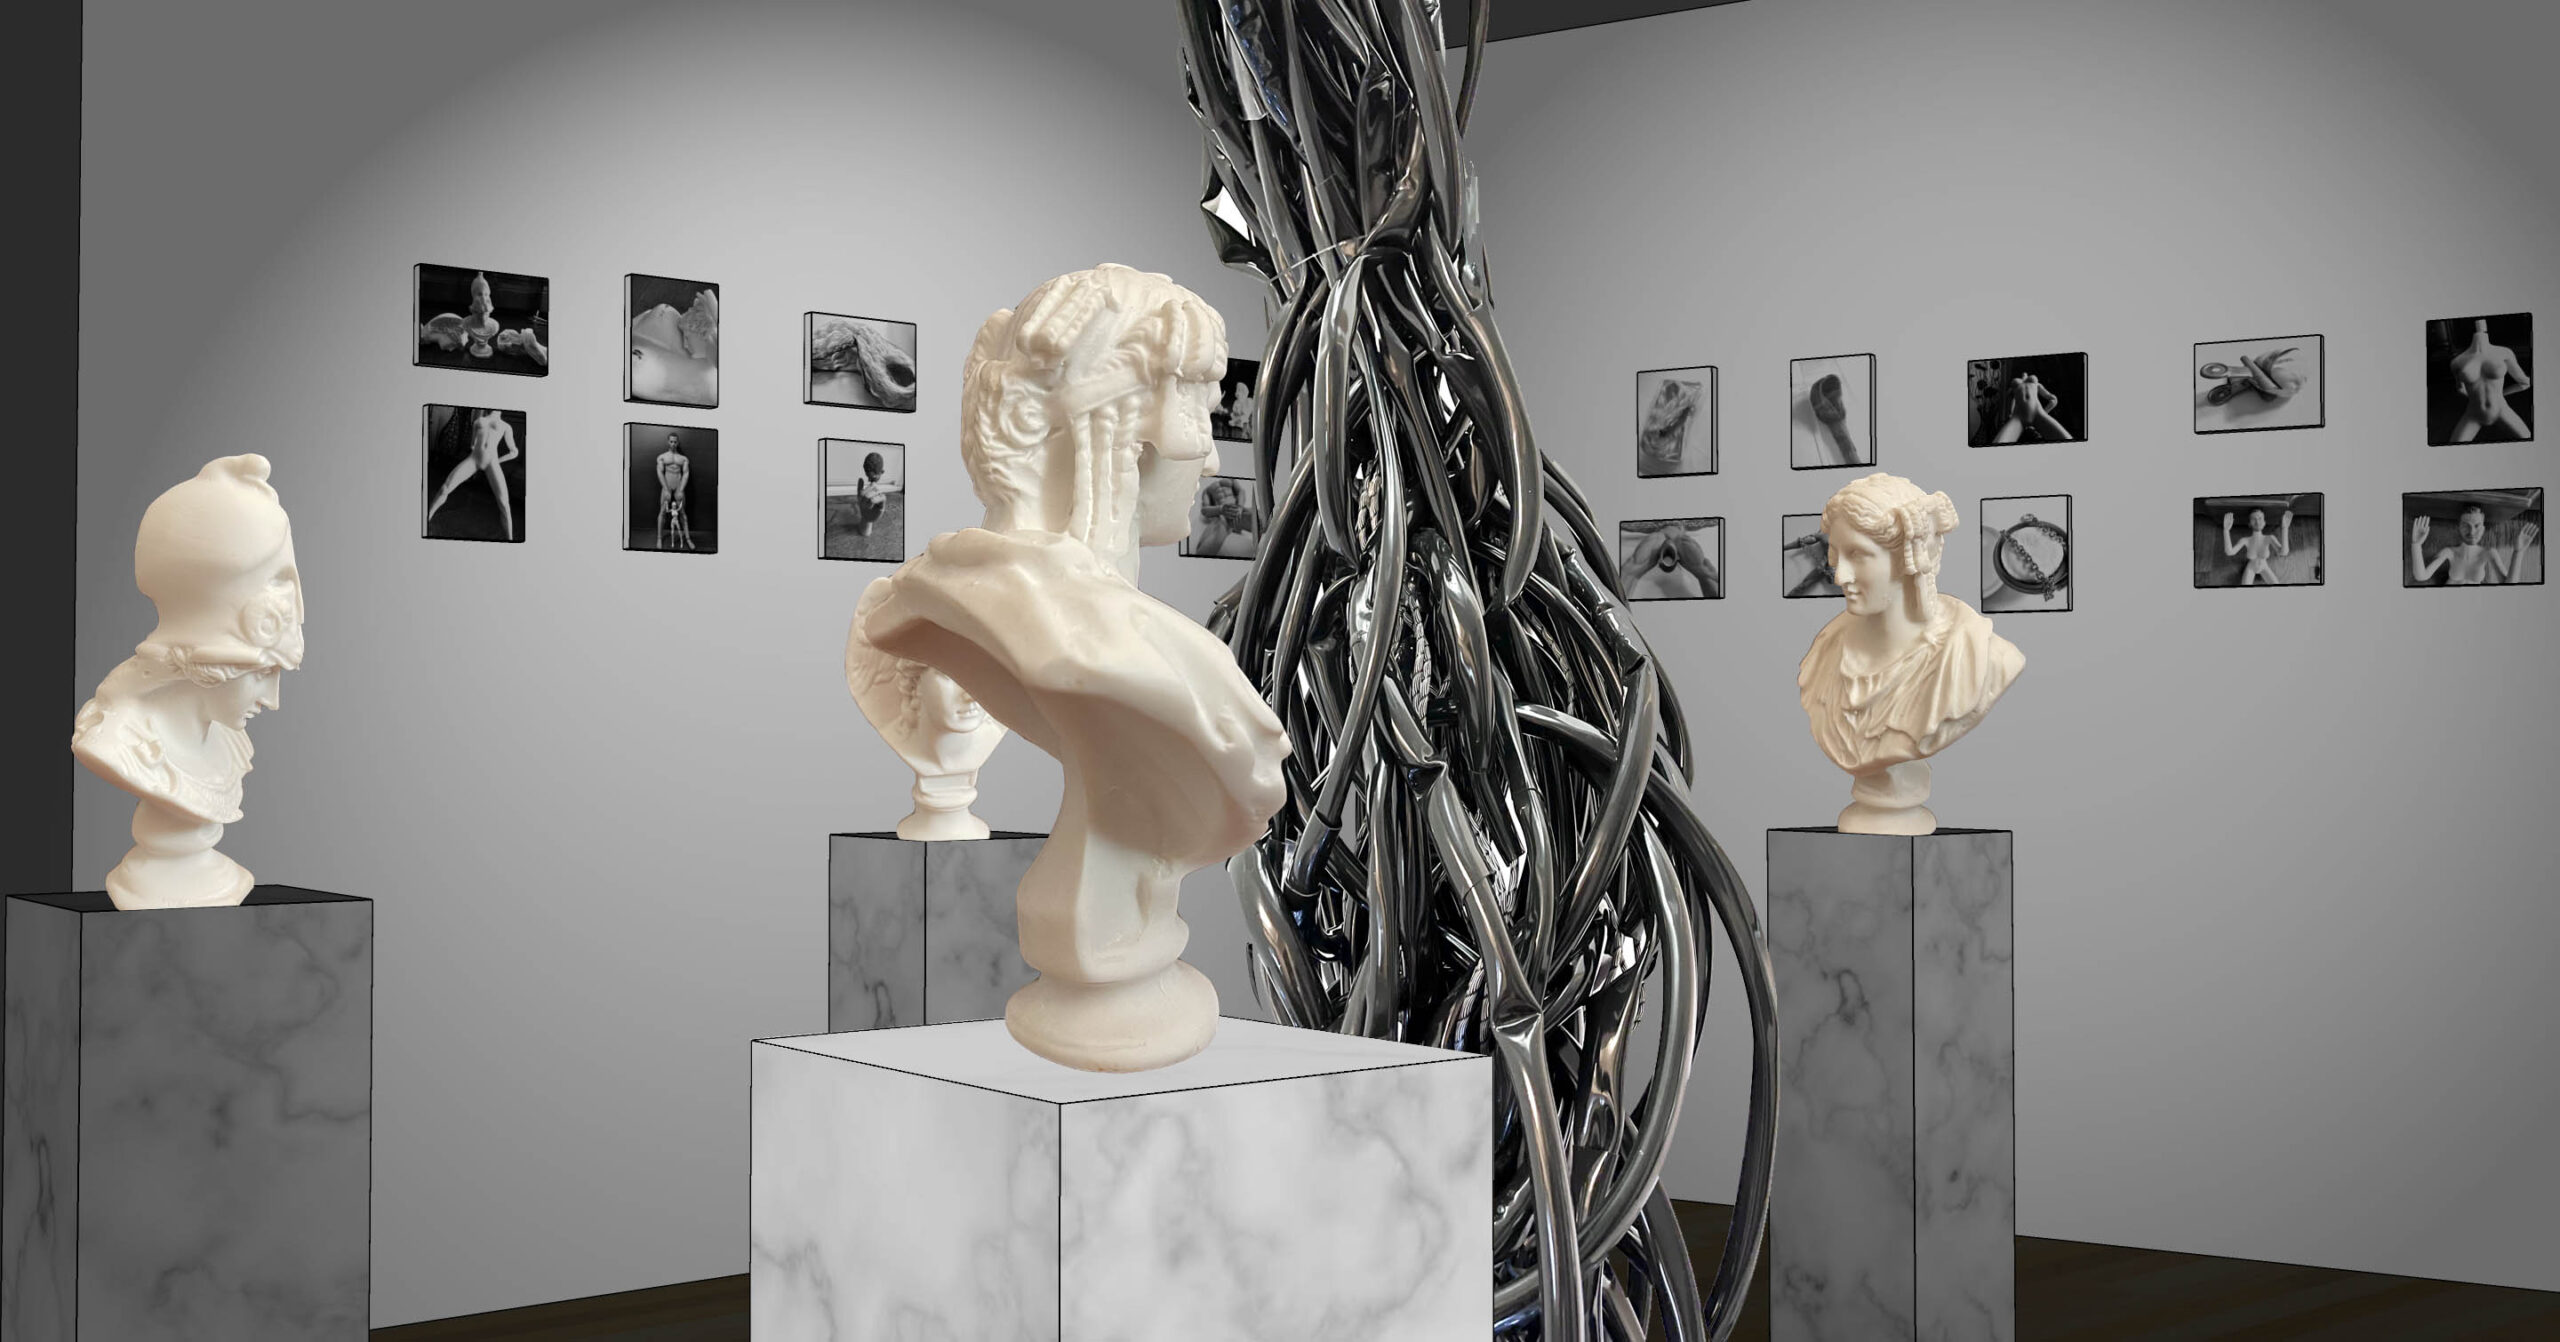 Installation view, with classical sculptures surrouding a tree like structure.